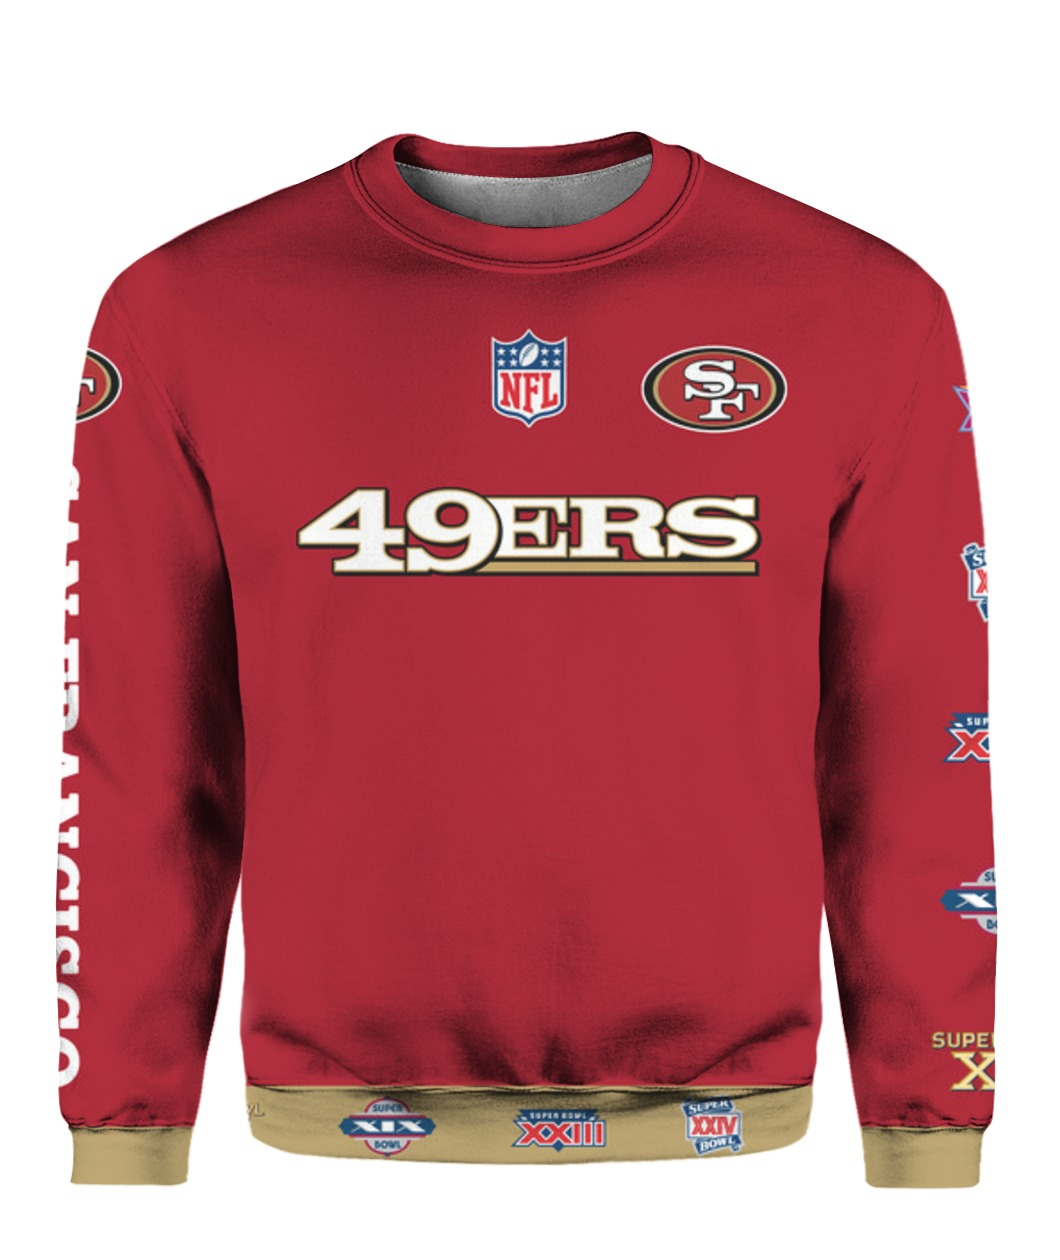 Stand for the flag kneel for the cross san francisco 49ers all over print sweatshirt